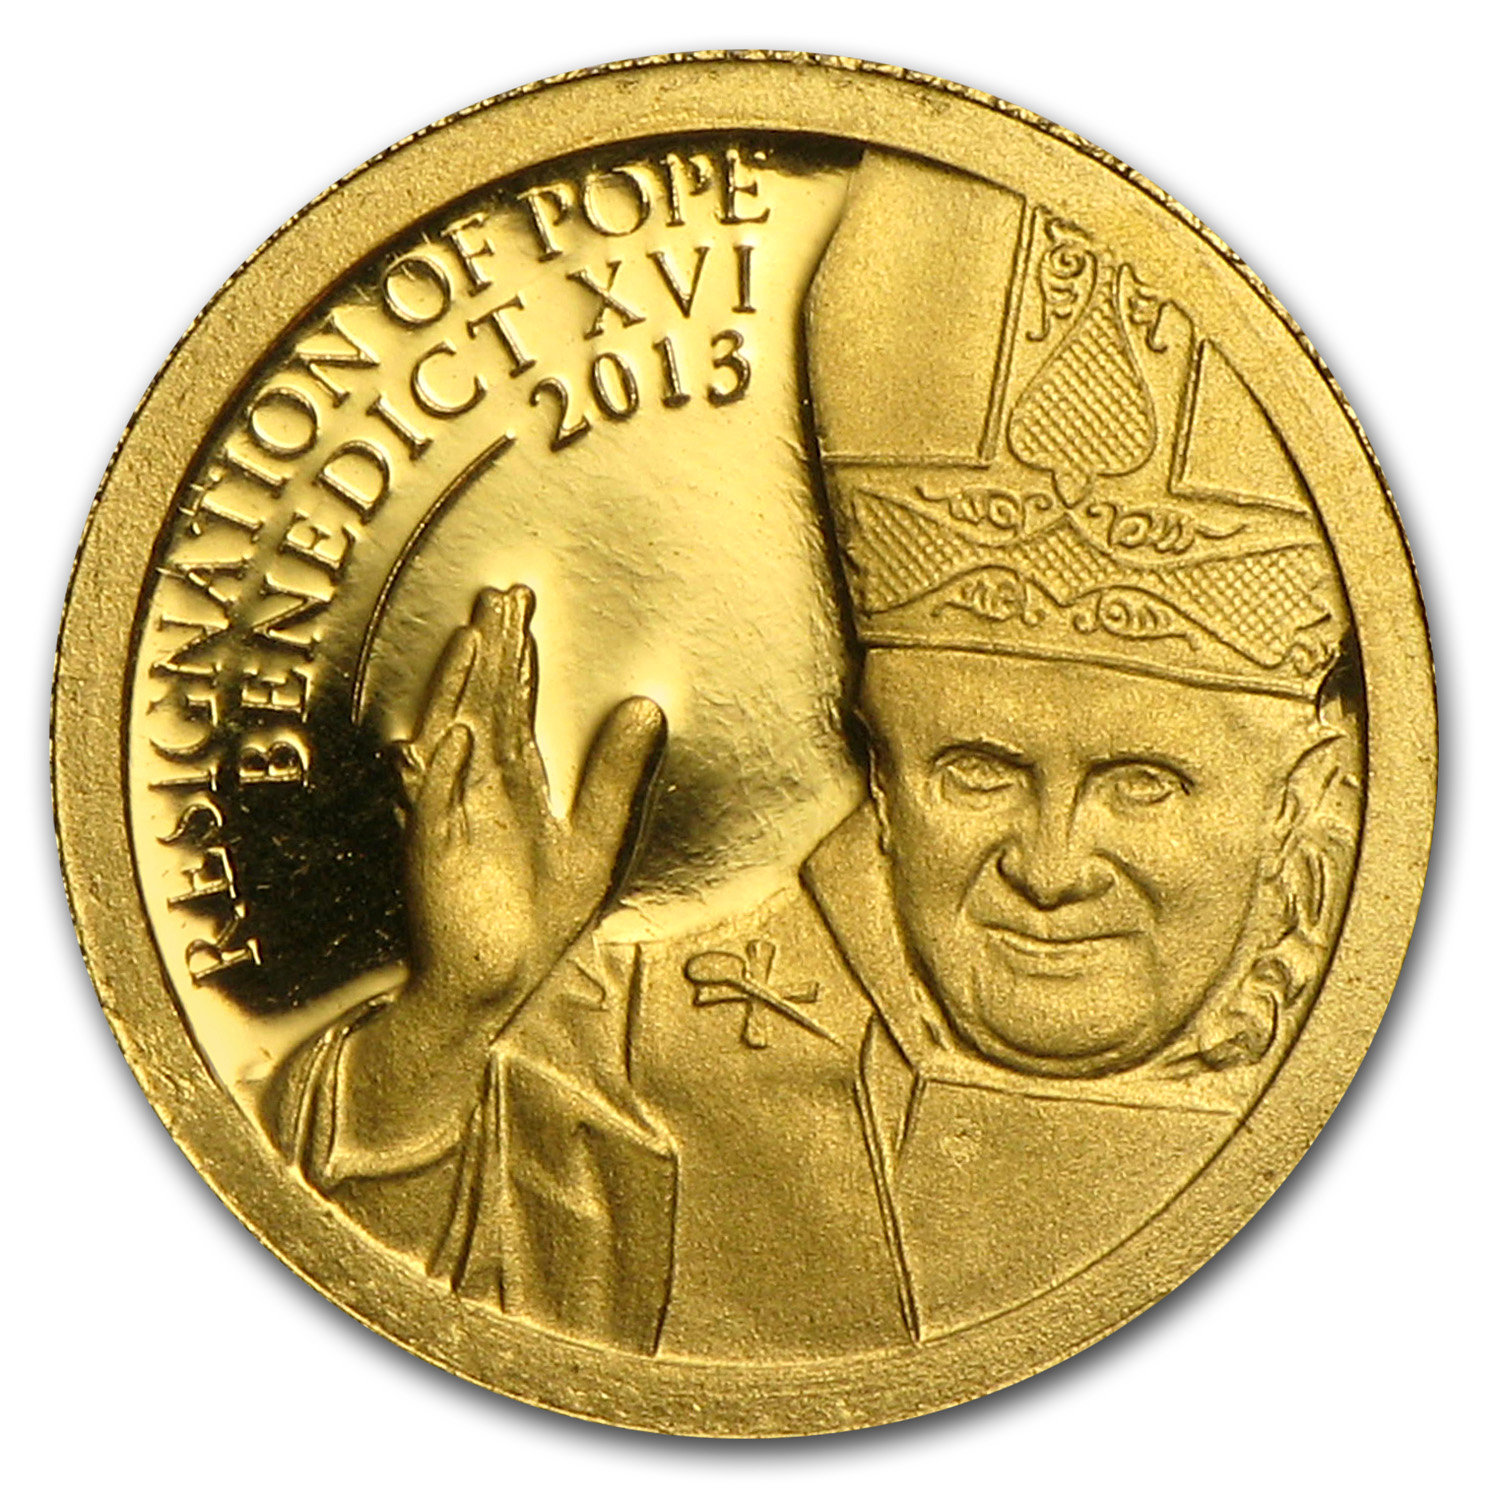 Pope Francis I Gold Proof Cook Islands $1 2013